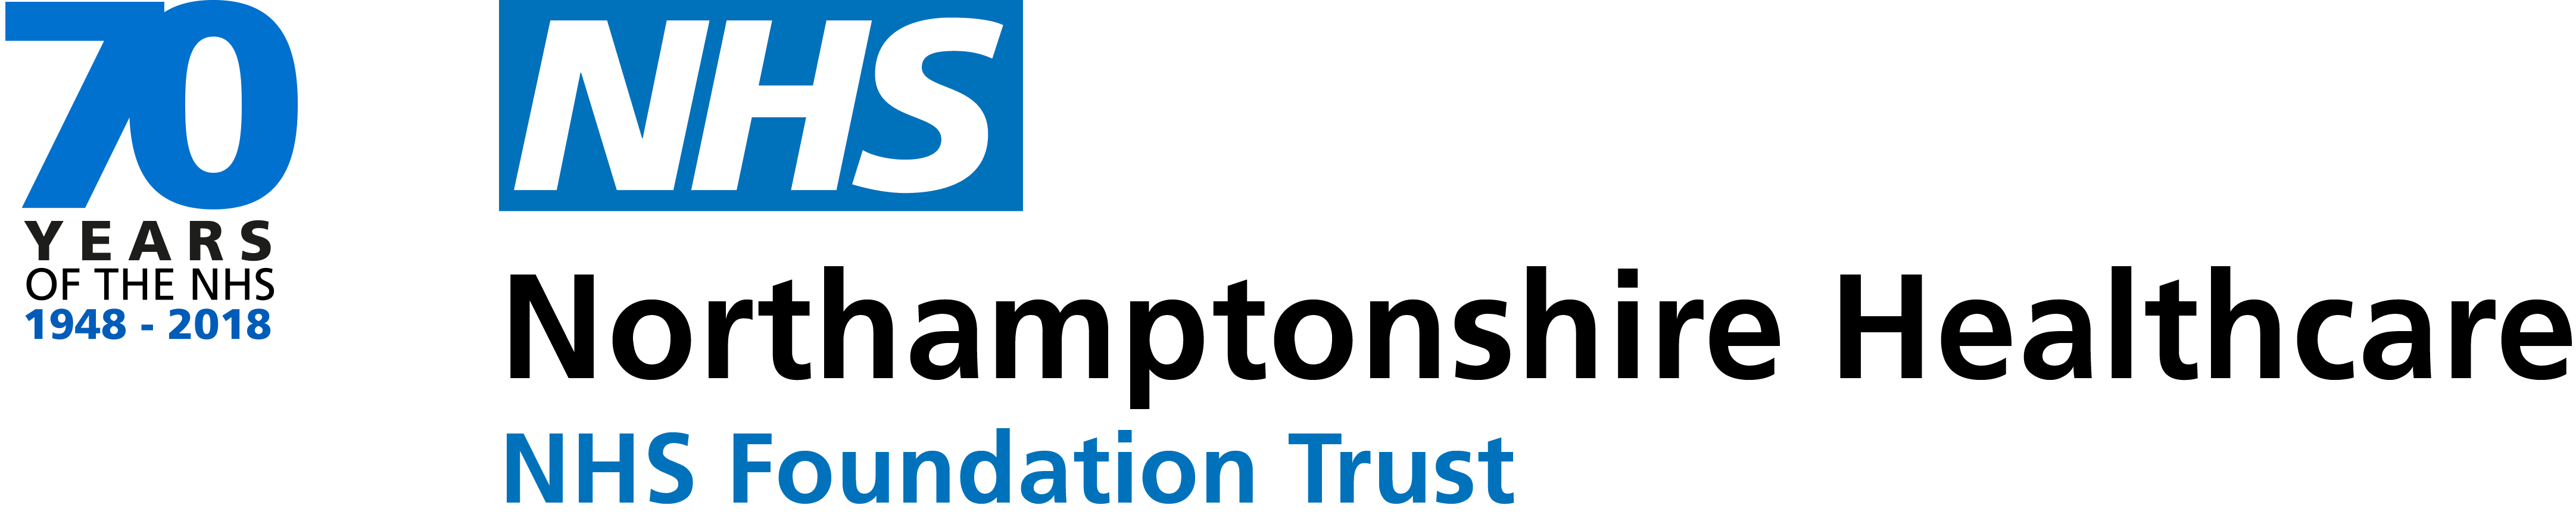 Official logo for website and intranet (with NHS 70)